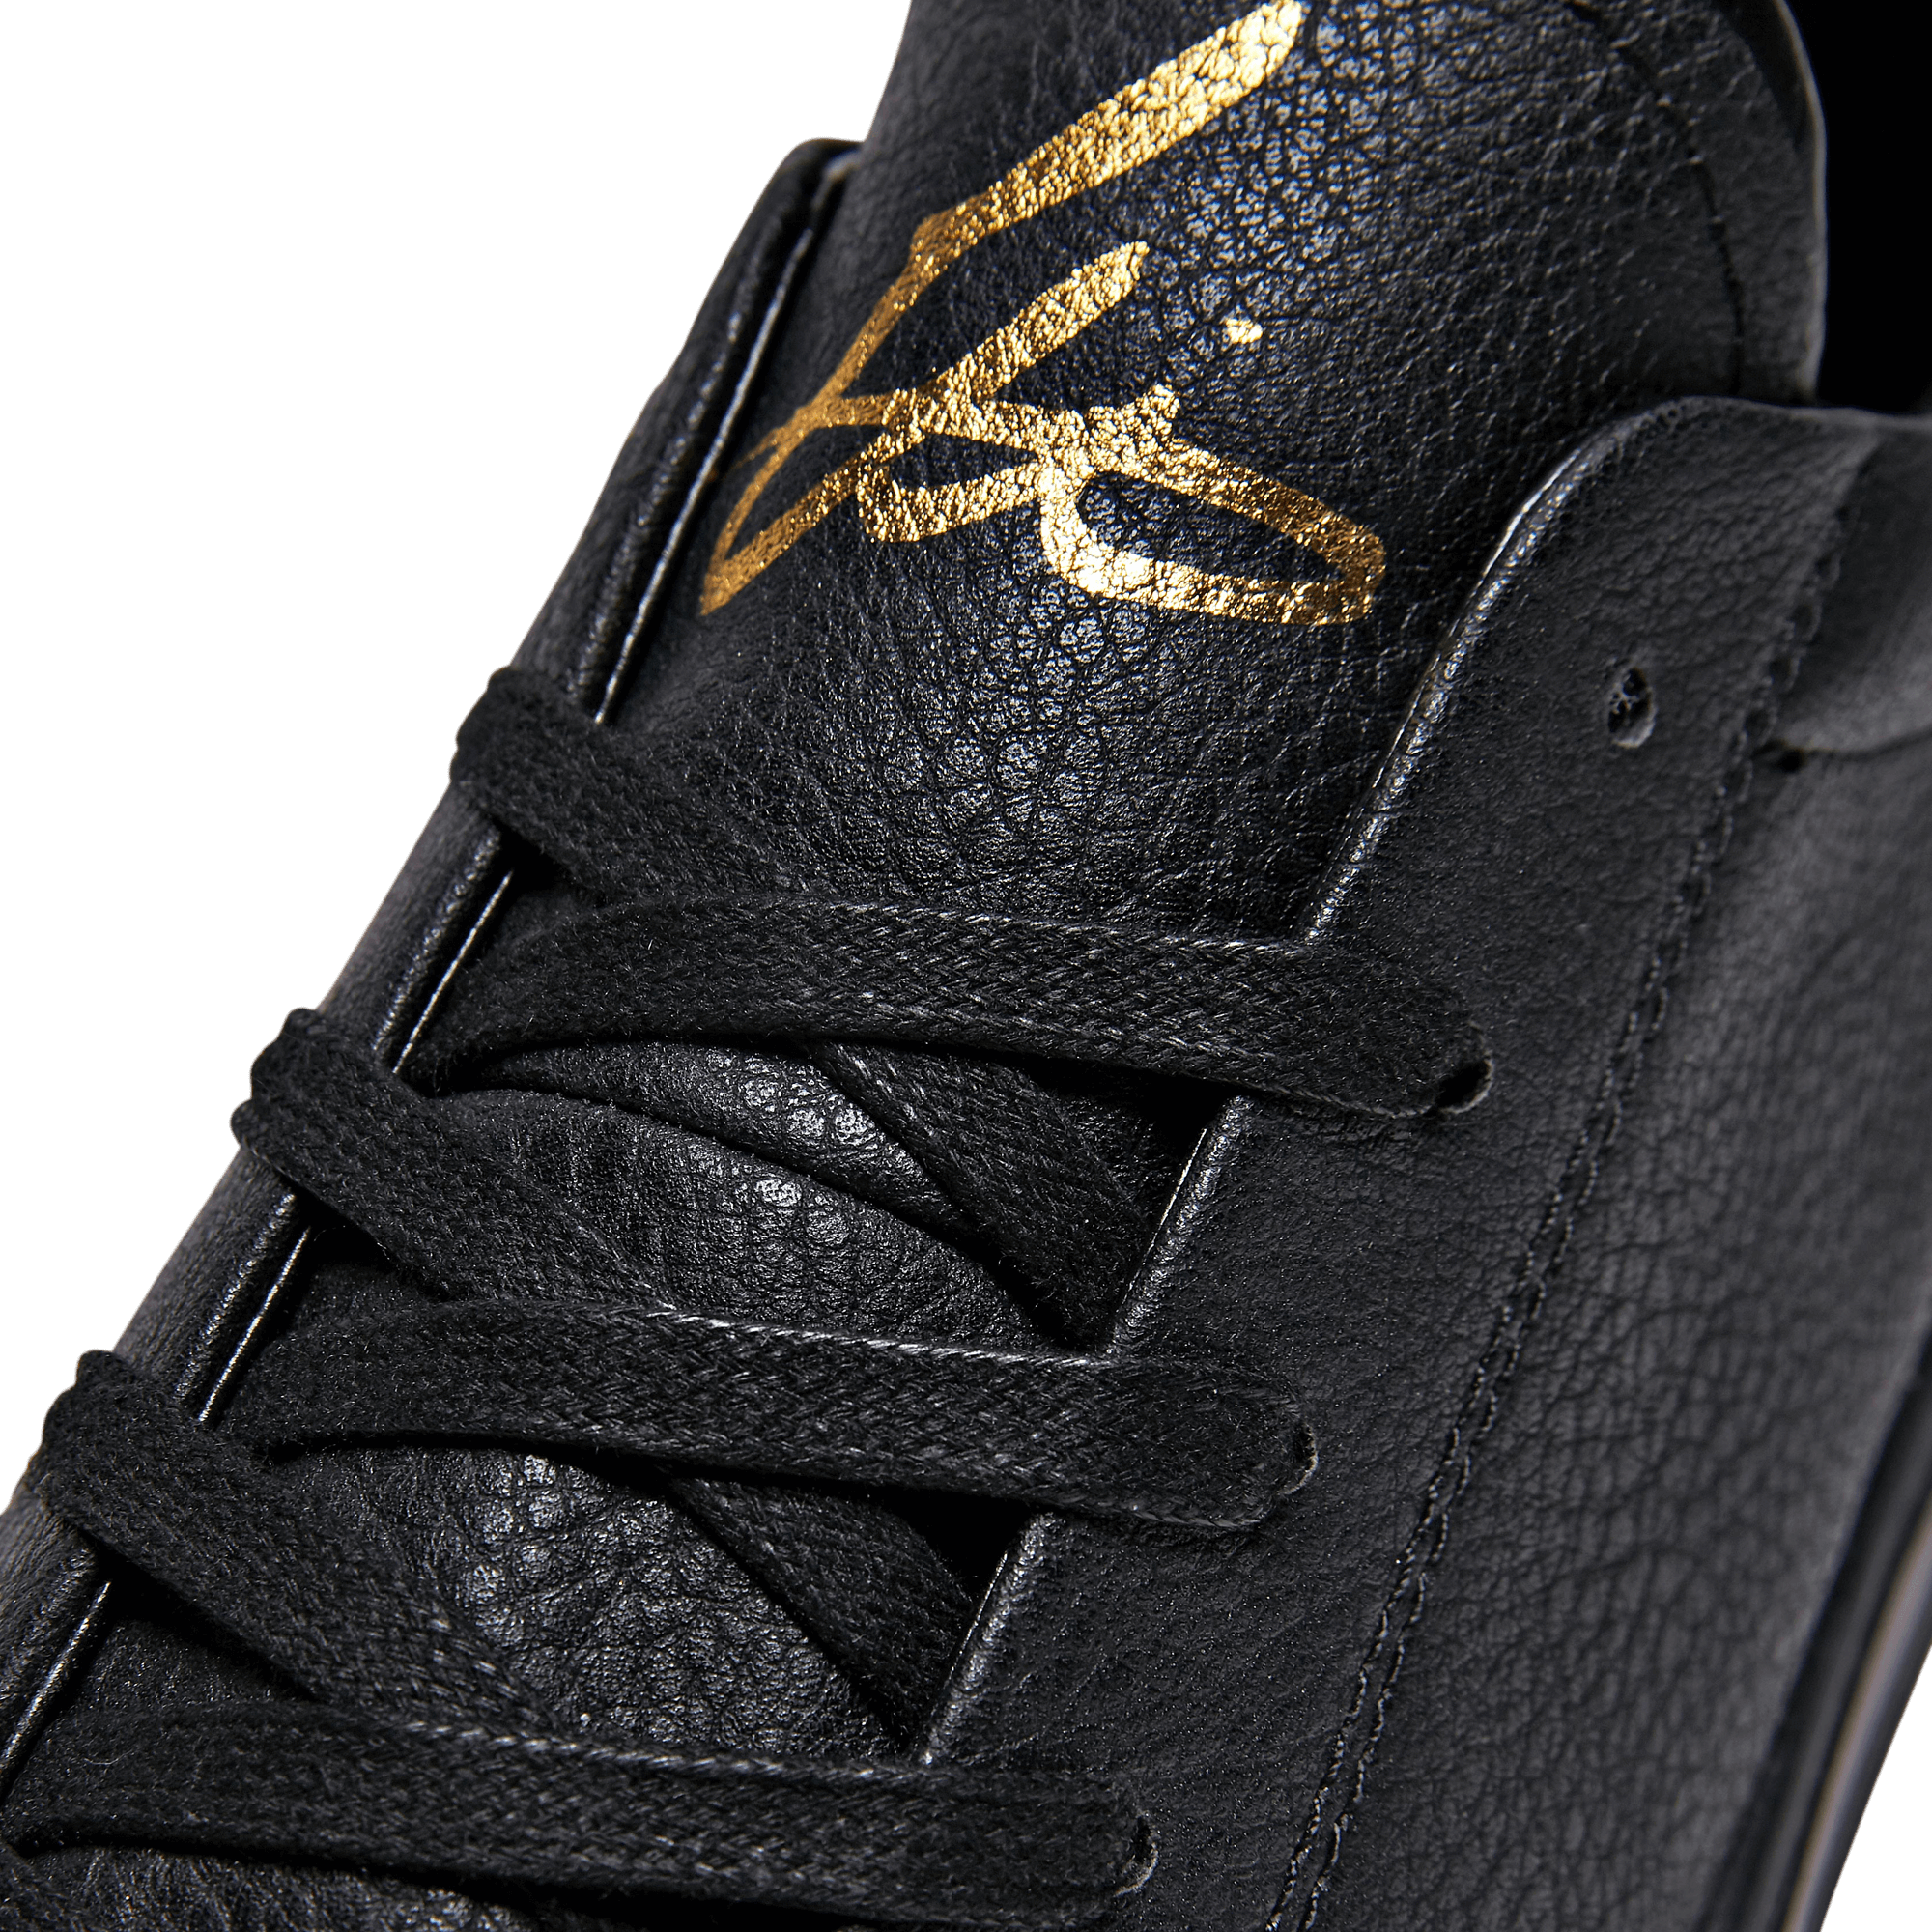 Patriot Reptile Trainer - Black / Gold